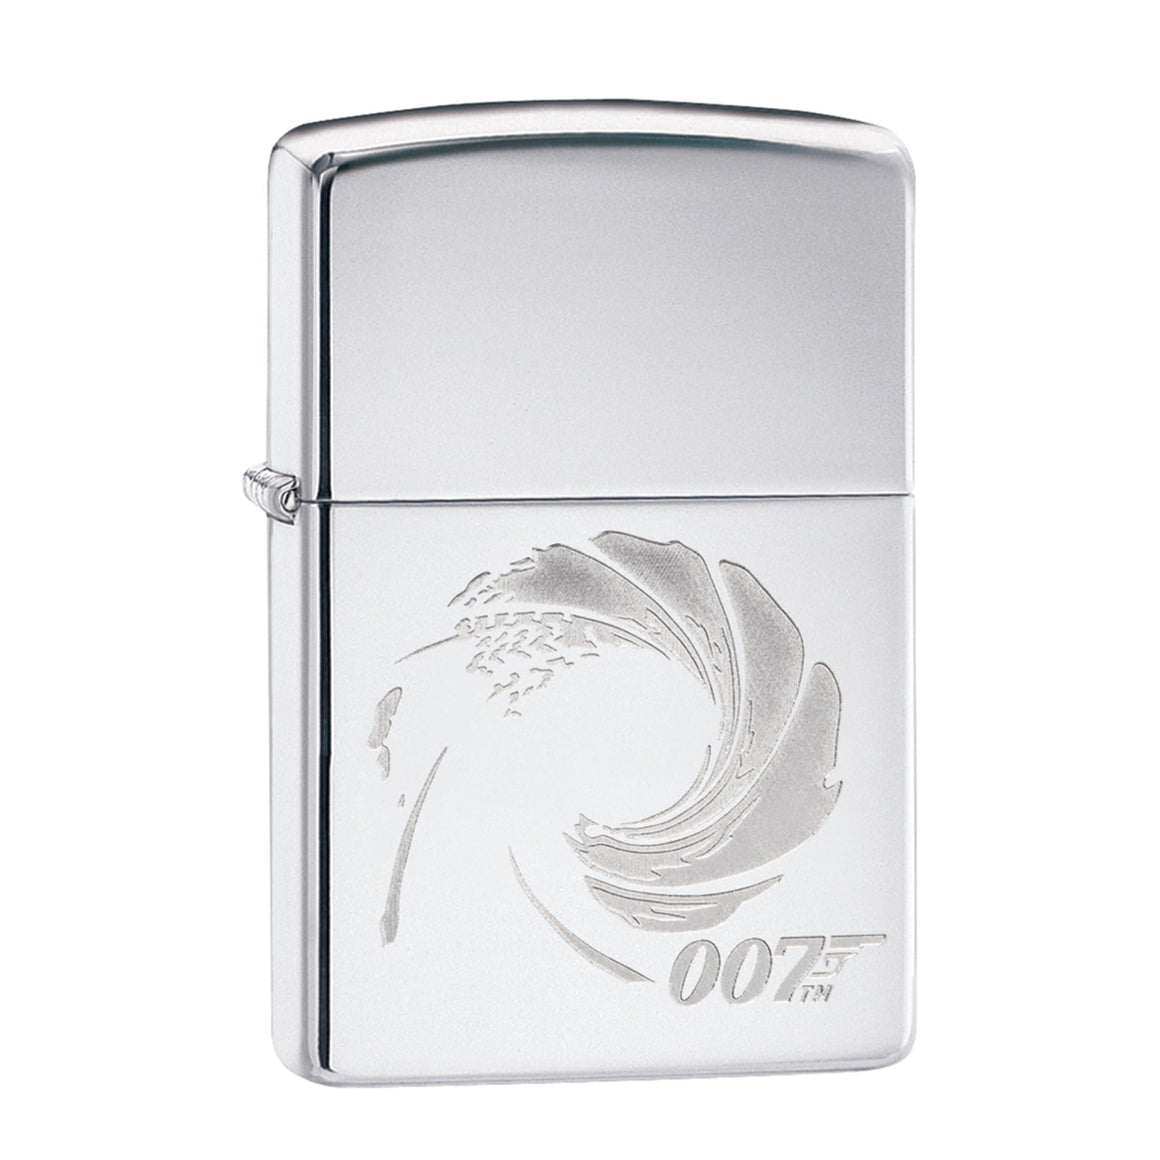 James Bond Zippo Lighter (Gun Barrel Silver) - 007STORE